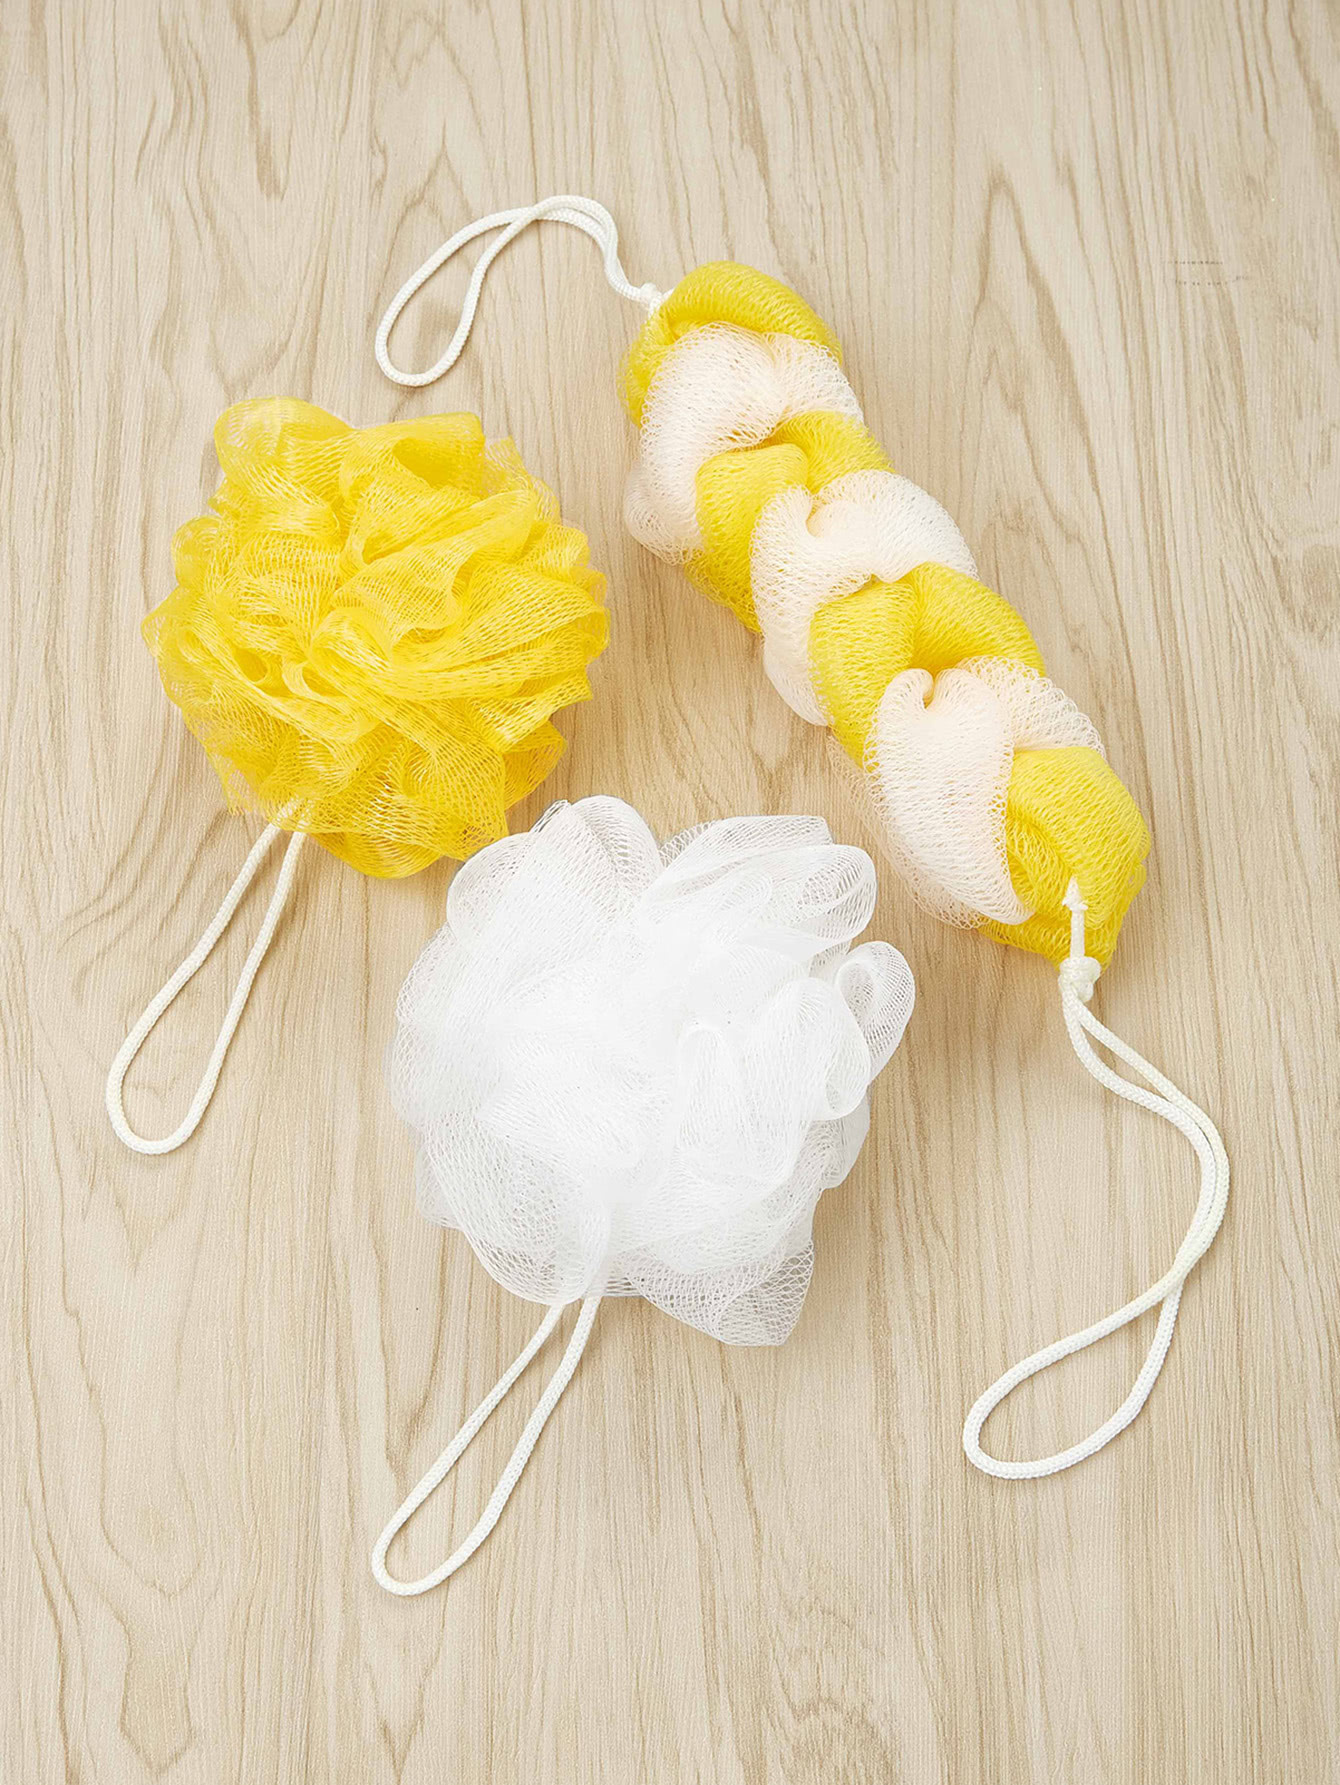 3Pcs Bath Puff Sponge Mesh Net Bath Balls Set